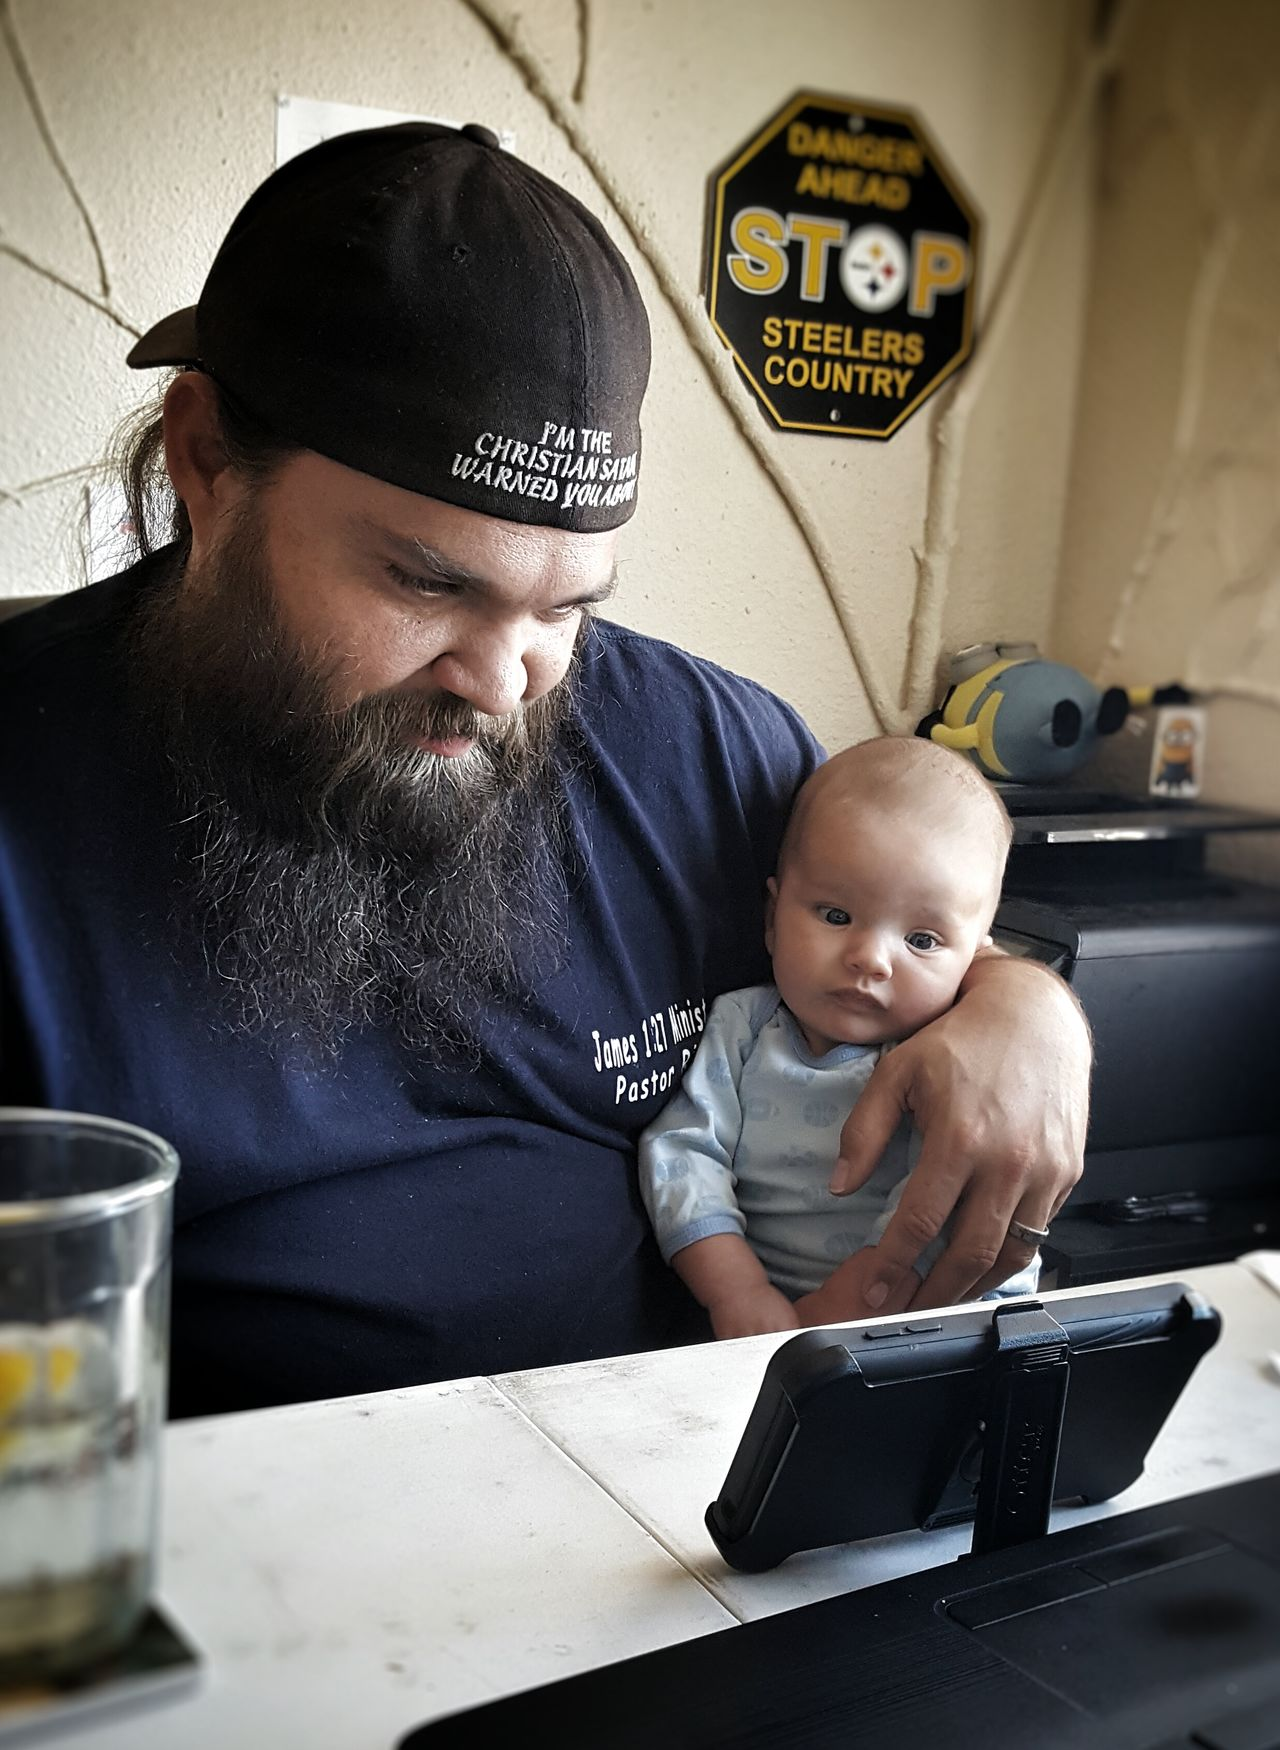 Baby Two People Indoors  People Adult Day Technology Baby Boy Father Fatherhood Moments Watching Steelers Steelers Pride  Home Office Christian Christianity Hat Beard Bonding Sitting Holding Phone